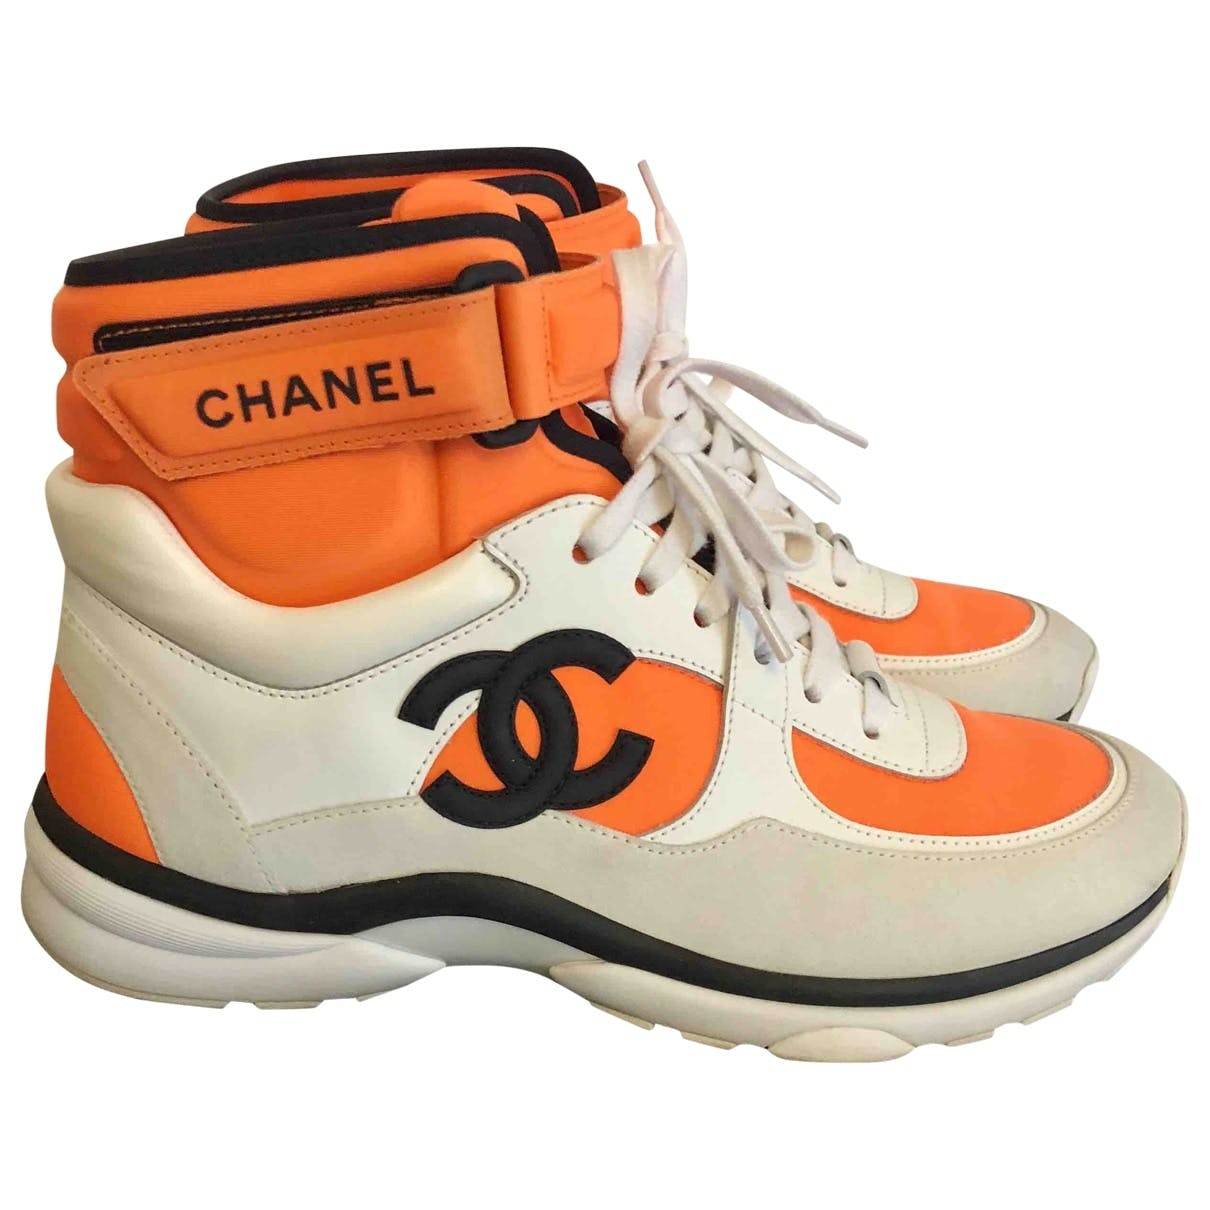 shop-chanel-ankle-strap-orange-sneakers